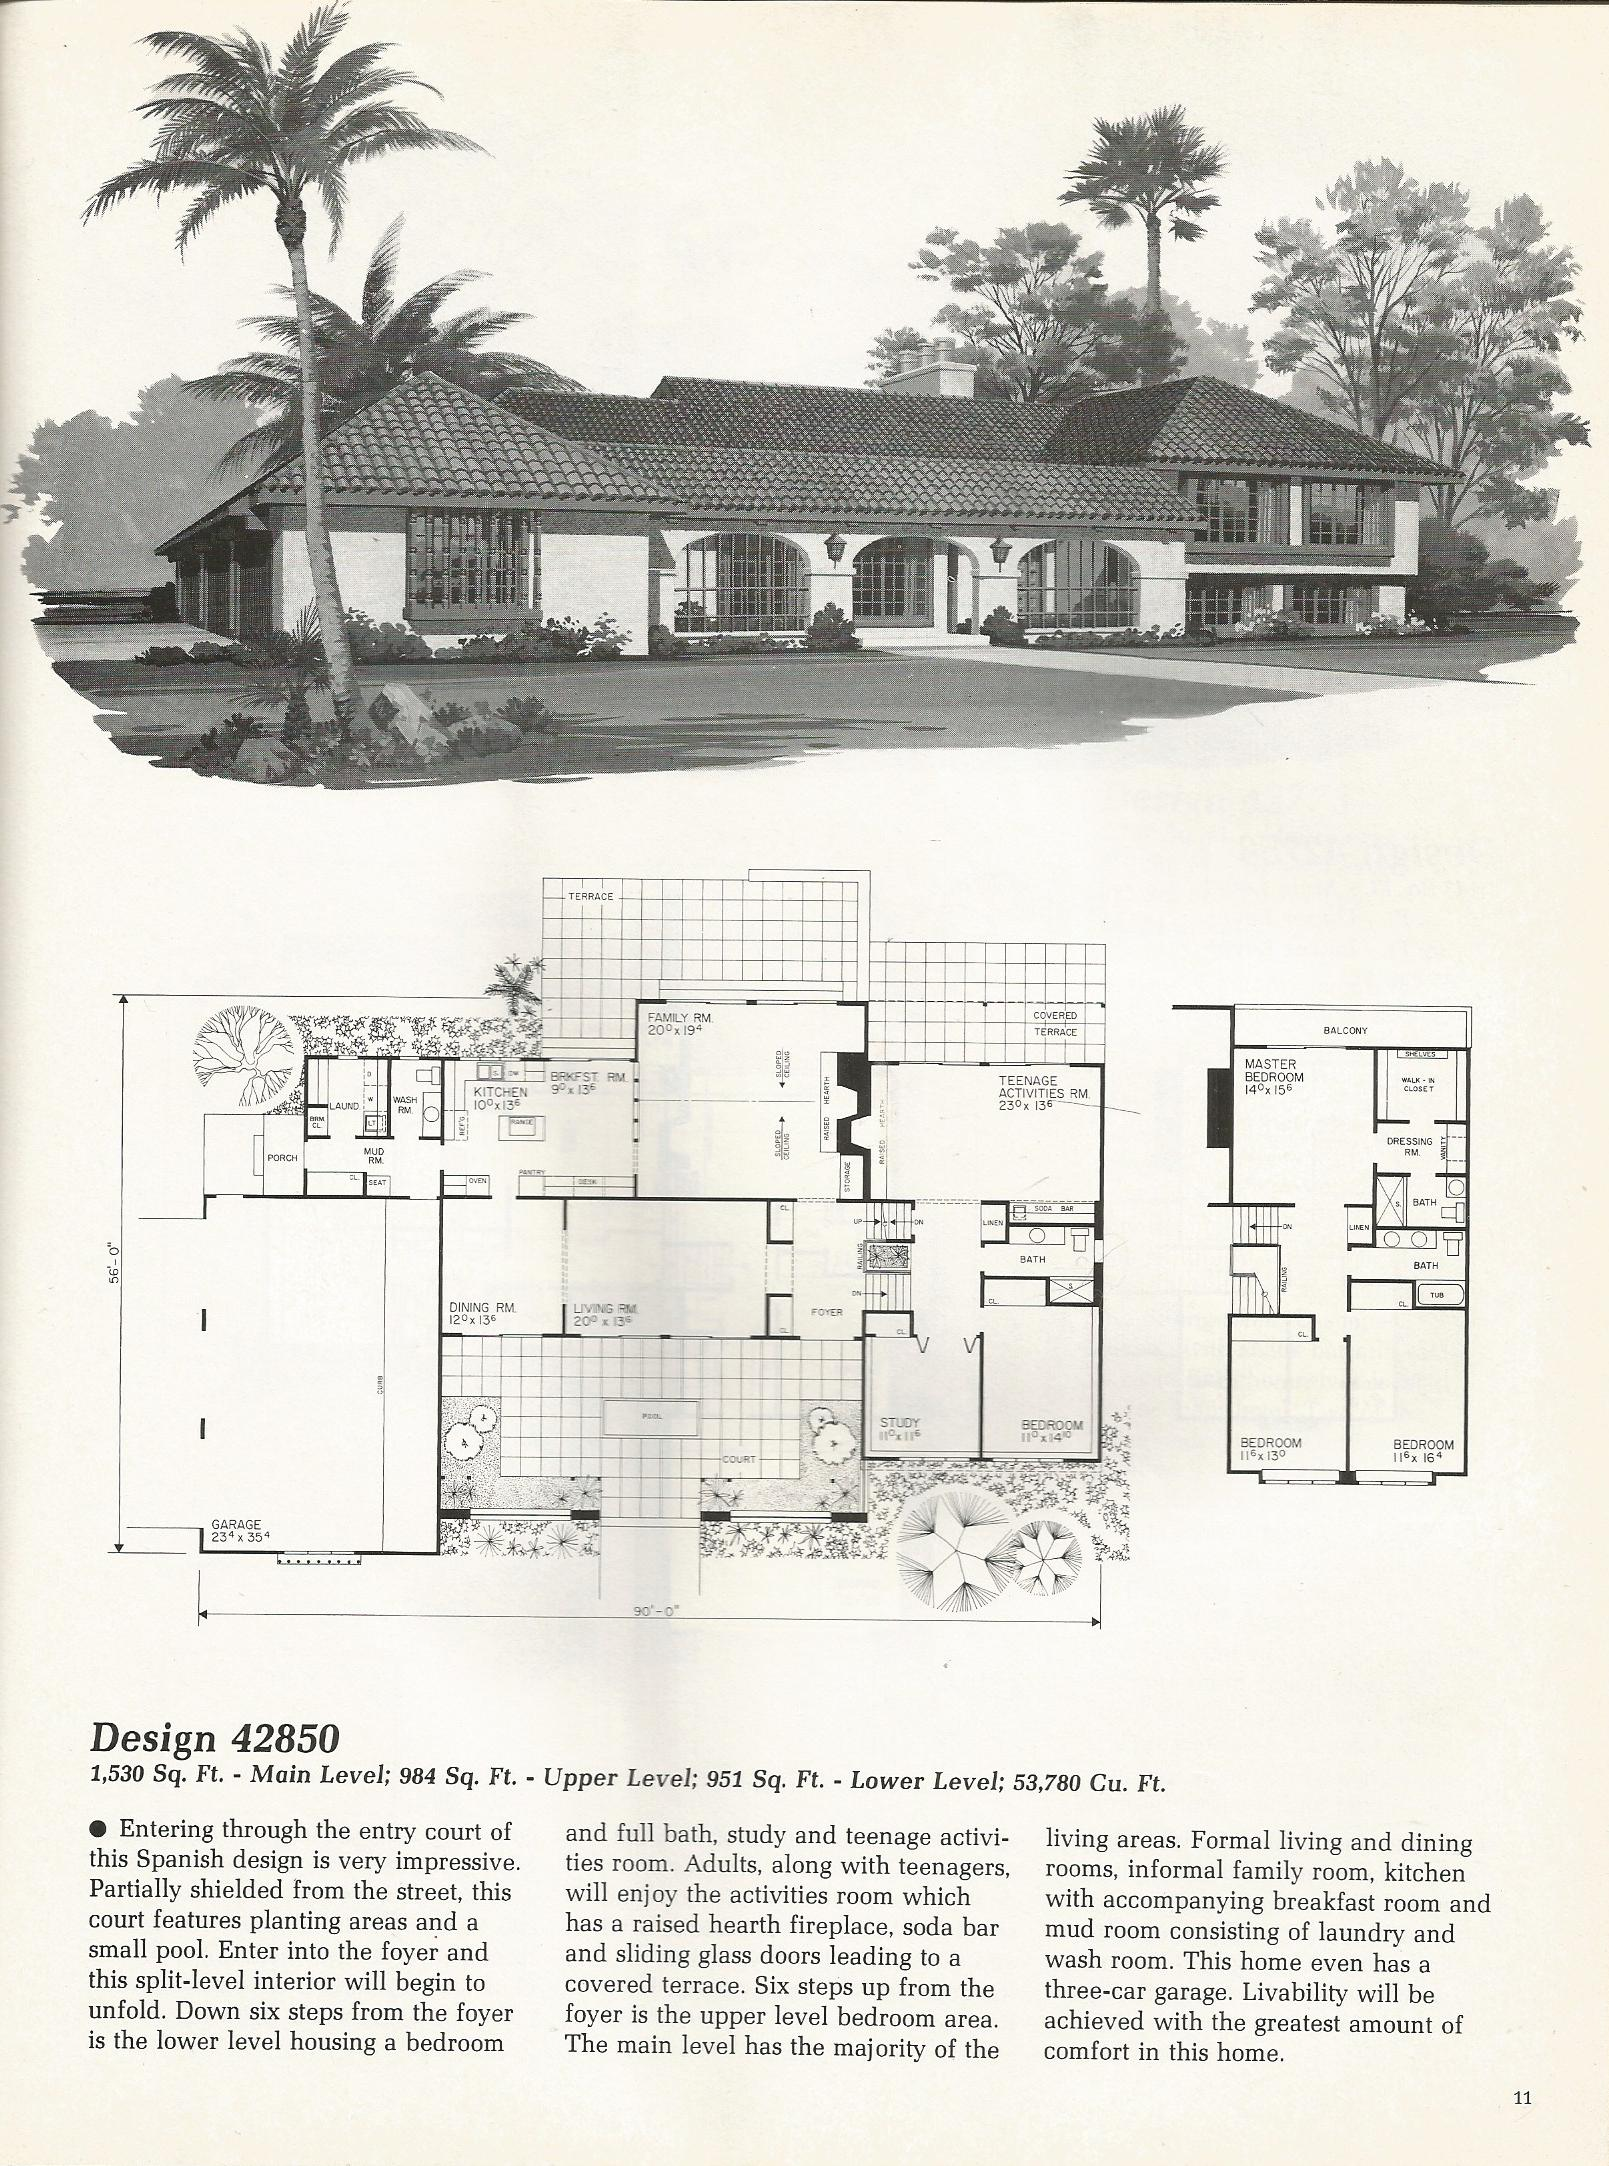 vintage-house-plans-42850 | on house architecture design, product page design, house drawing, sketchup house design, house plans with furniture layouts, house art design, house light design, house perspective design, house construction, house template, house design blueprint, green building design, house green design, house layout design, house study design, house model design, house studio design, house autocad, house painting design, house graphic design,